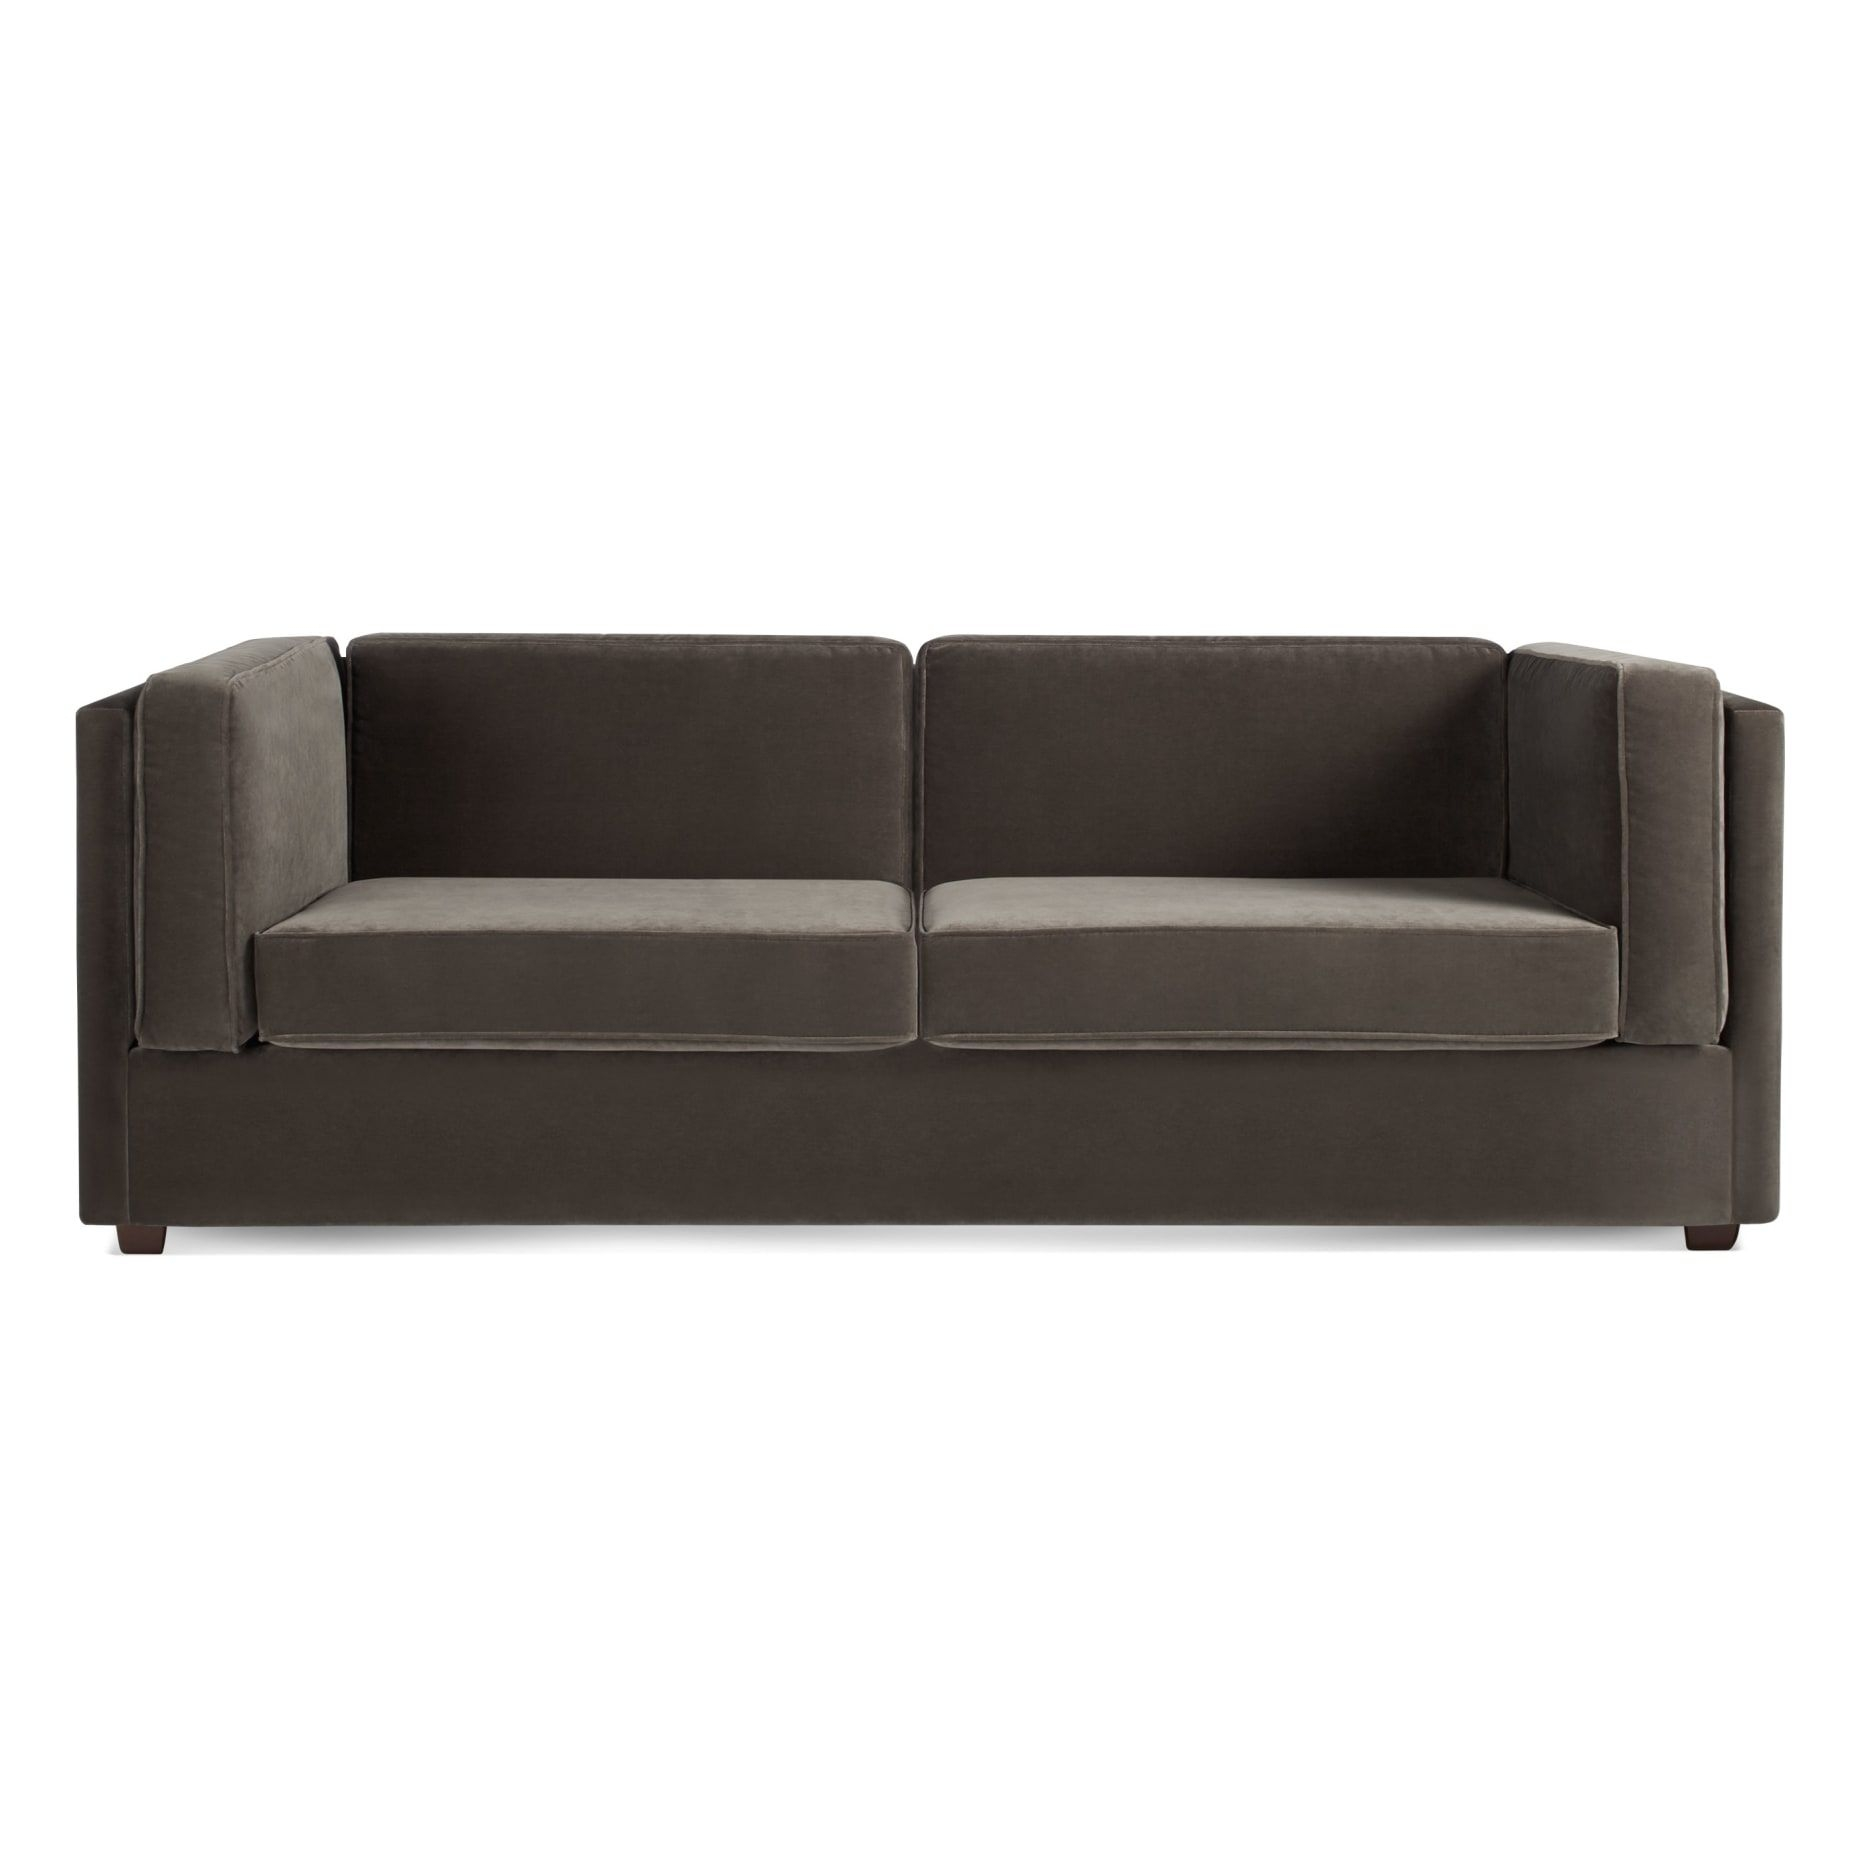 Bank Mink Velvet 80 Sleeper Sofa  Velvet sleeper sofa